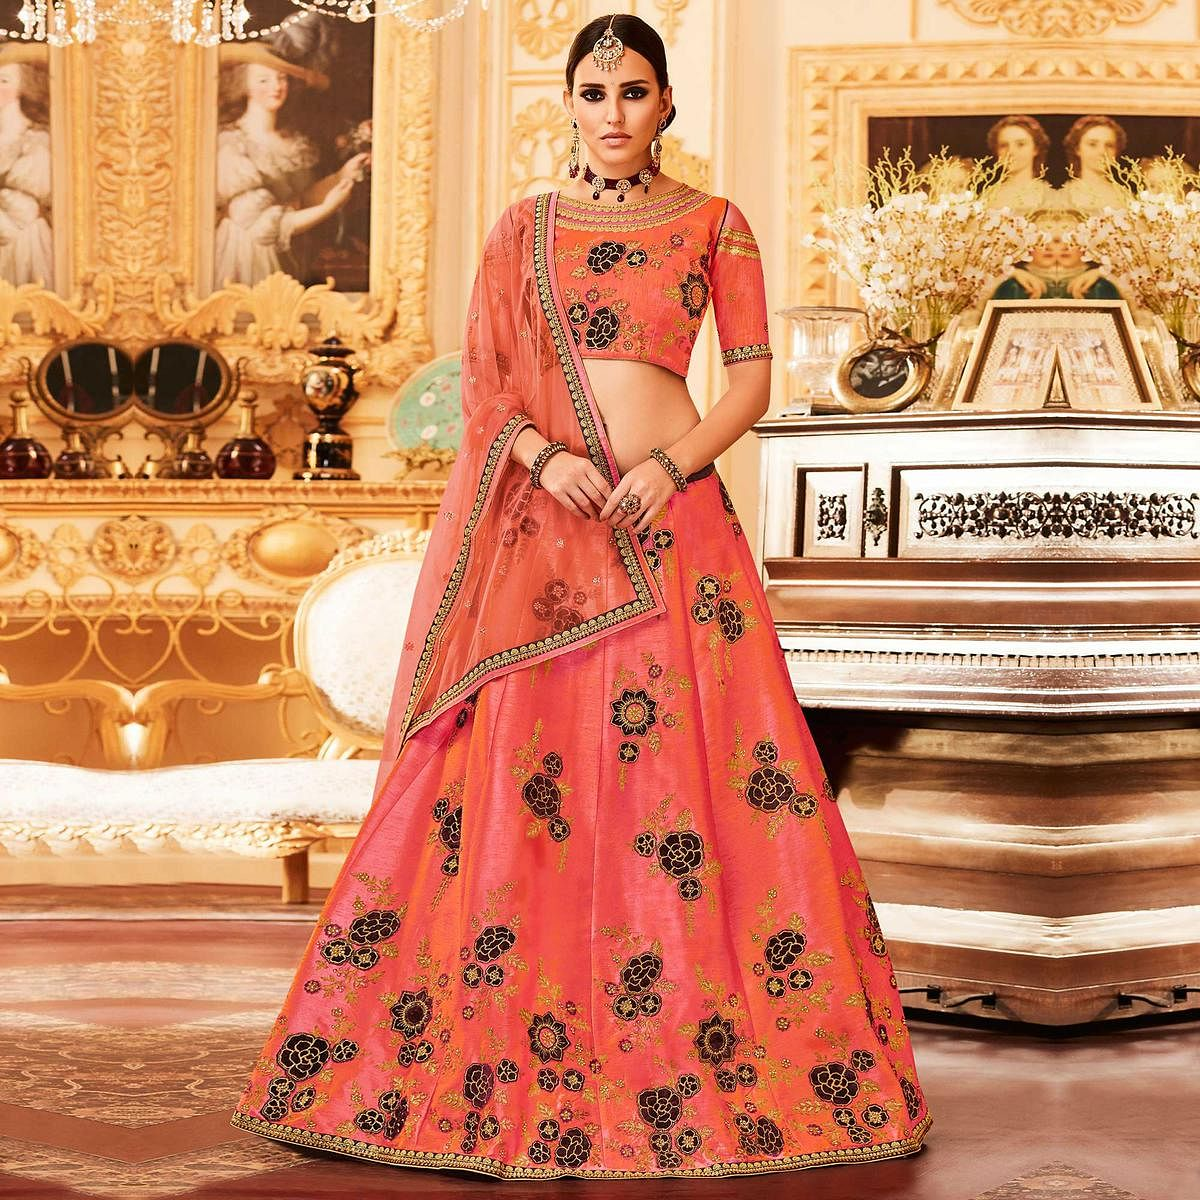 91fb88edda5246 Buy Peach Colored Designer Embroidered Party Wear Raw Silk Lehenga Choli  for womens online India, Best Prices, Reviews - Peachmode